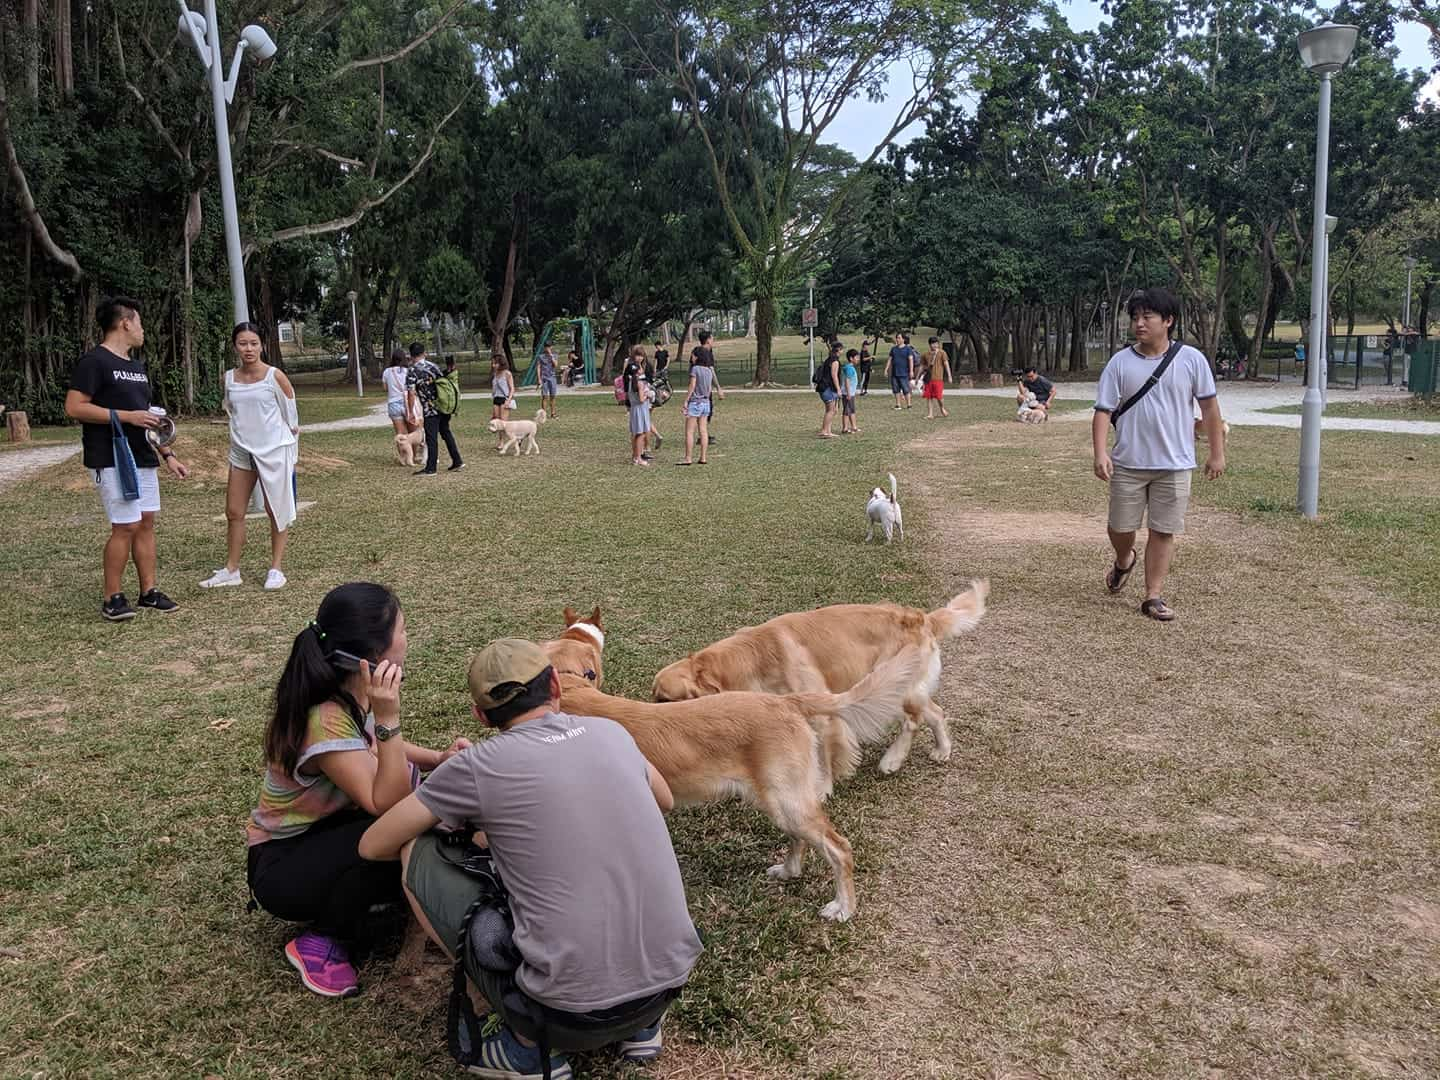 Dog owners interacting with their dogs at Bishan Dog Park